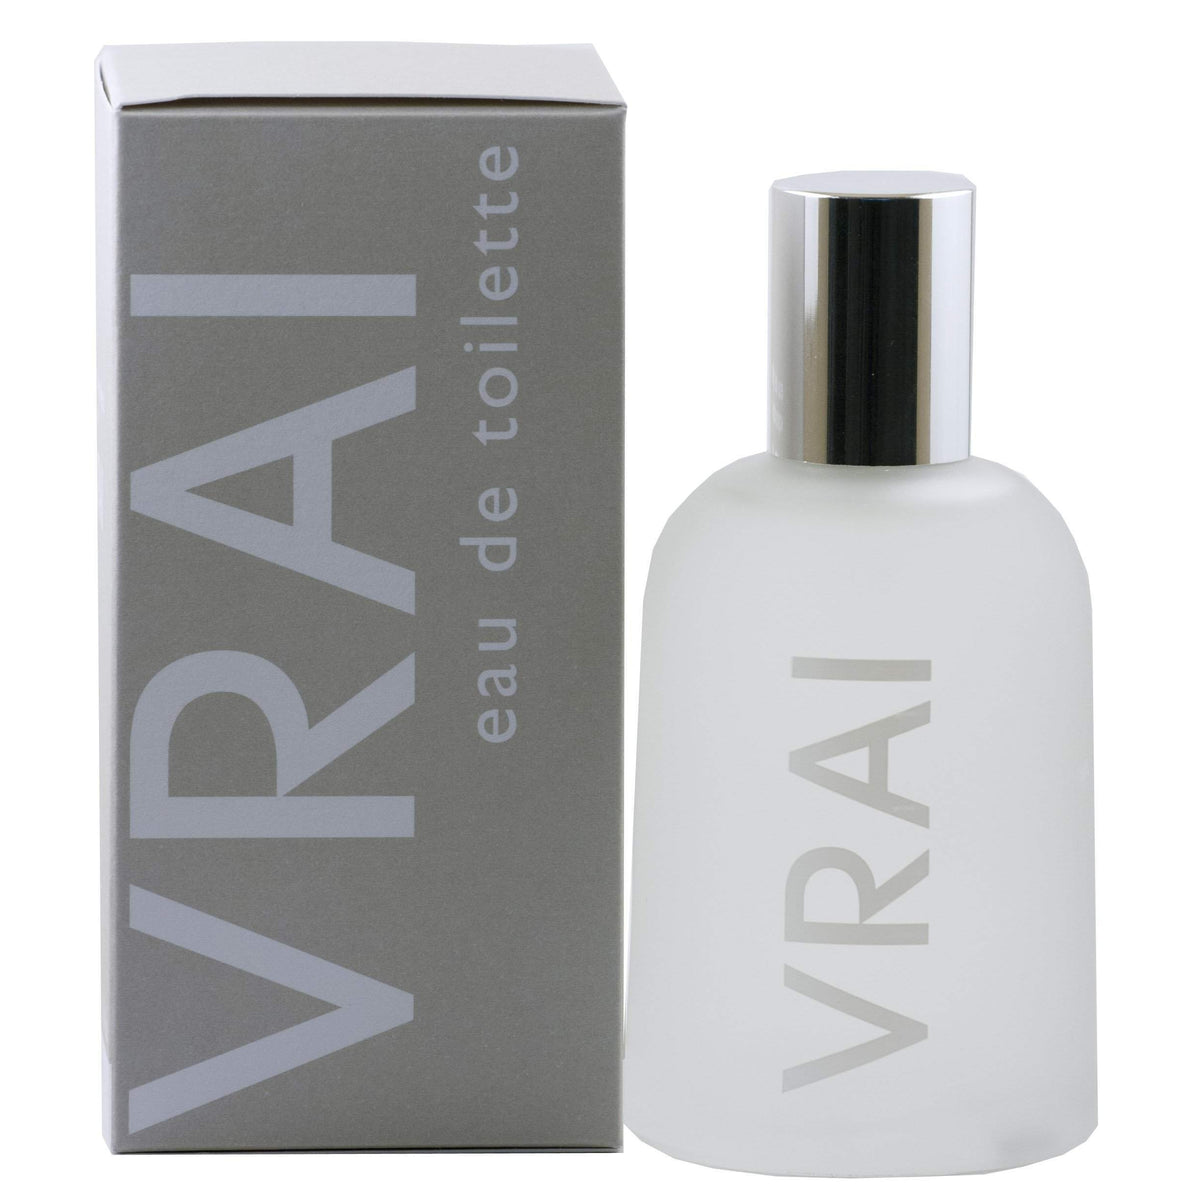 Fragonard Parfumeur VRAI Eau de Toilette 100 ml Perfume-Fragonard Parfumeur-Oak Manor Fragrances